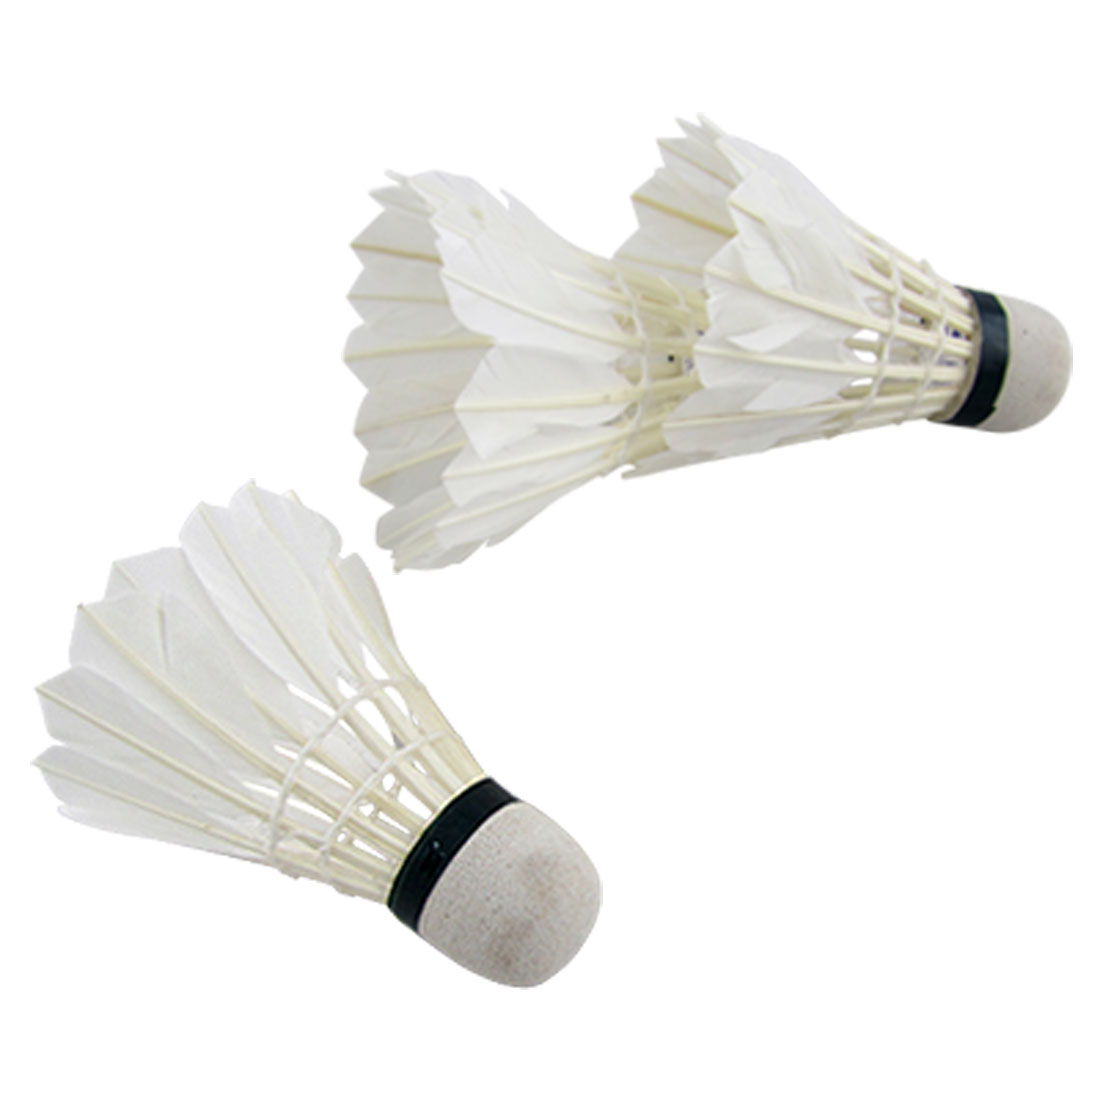 Outdoor Sports Feather Foam Badminton Shuttlecock Ball Game White 3pcs